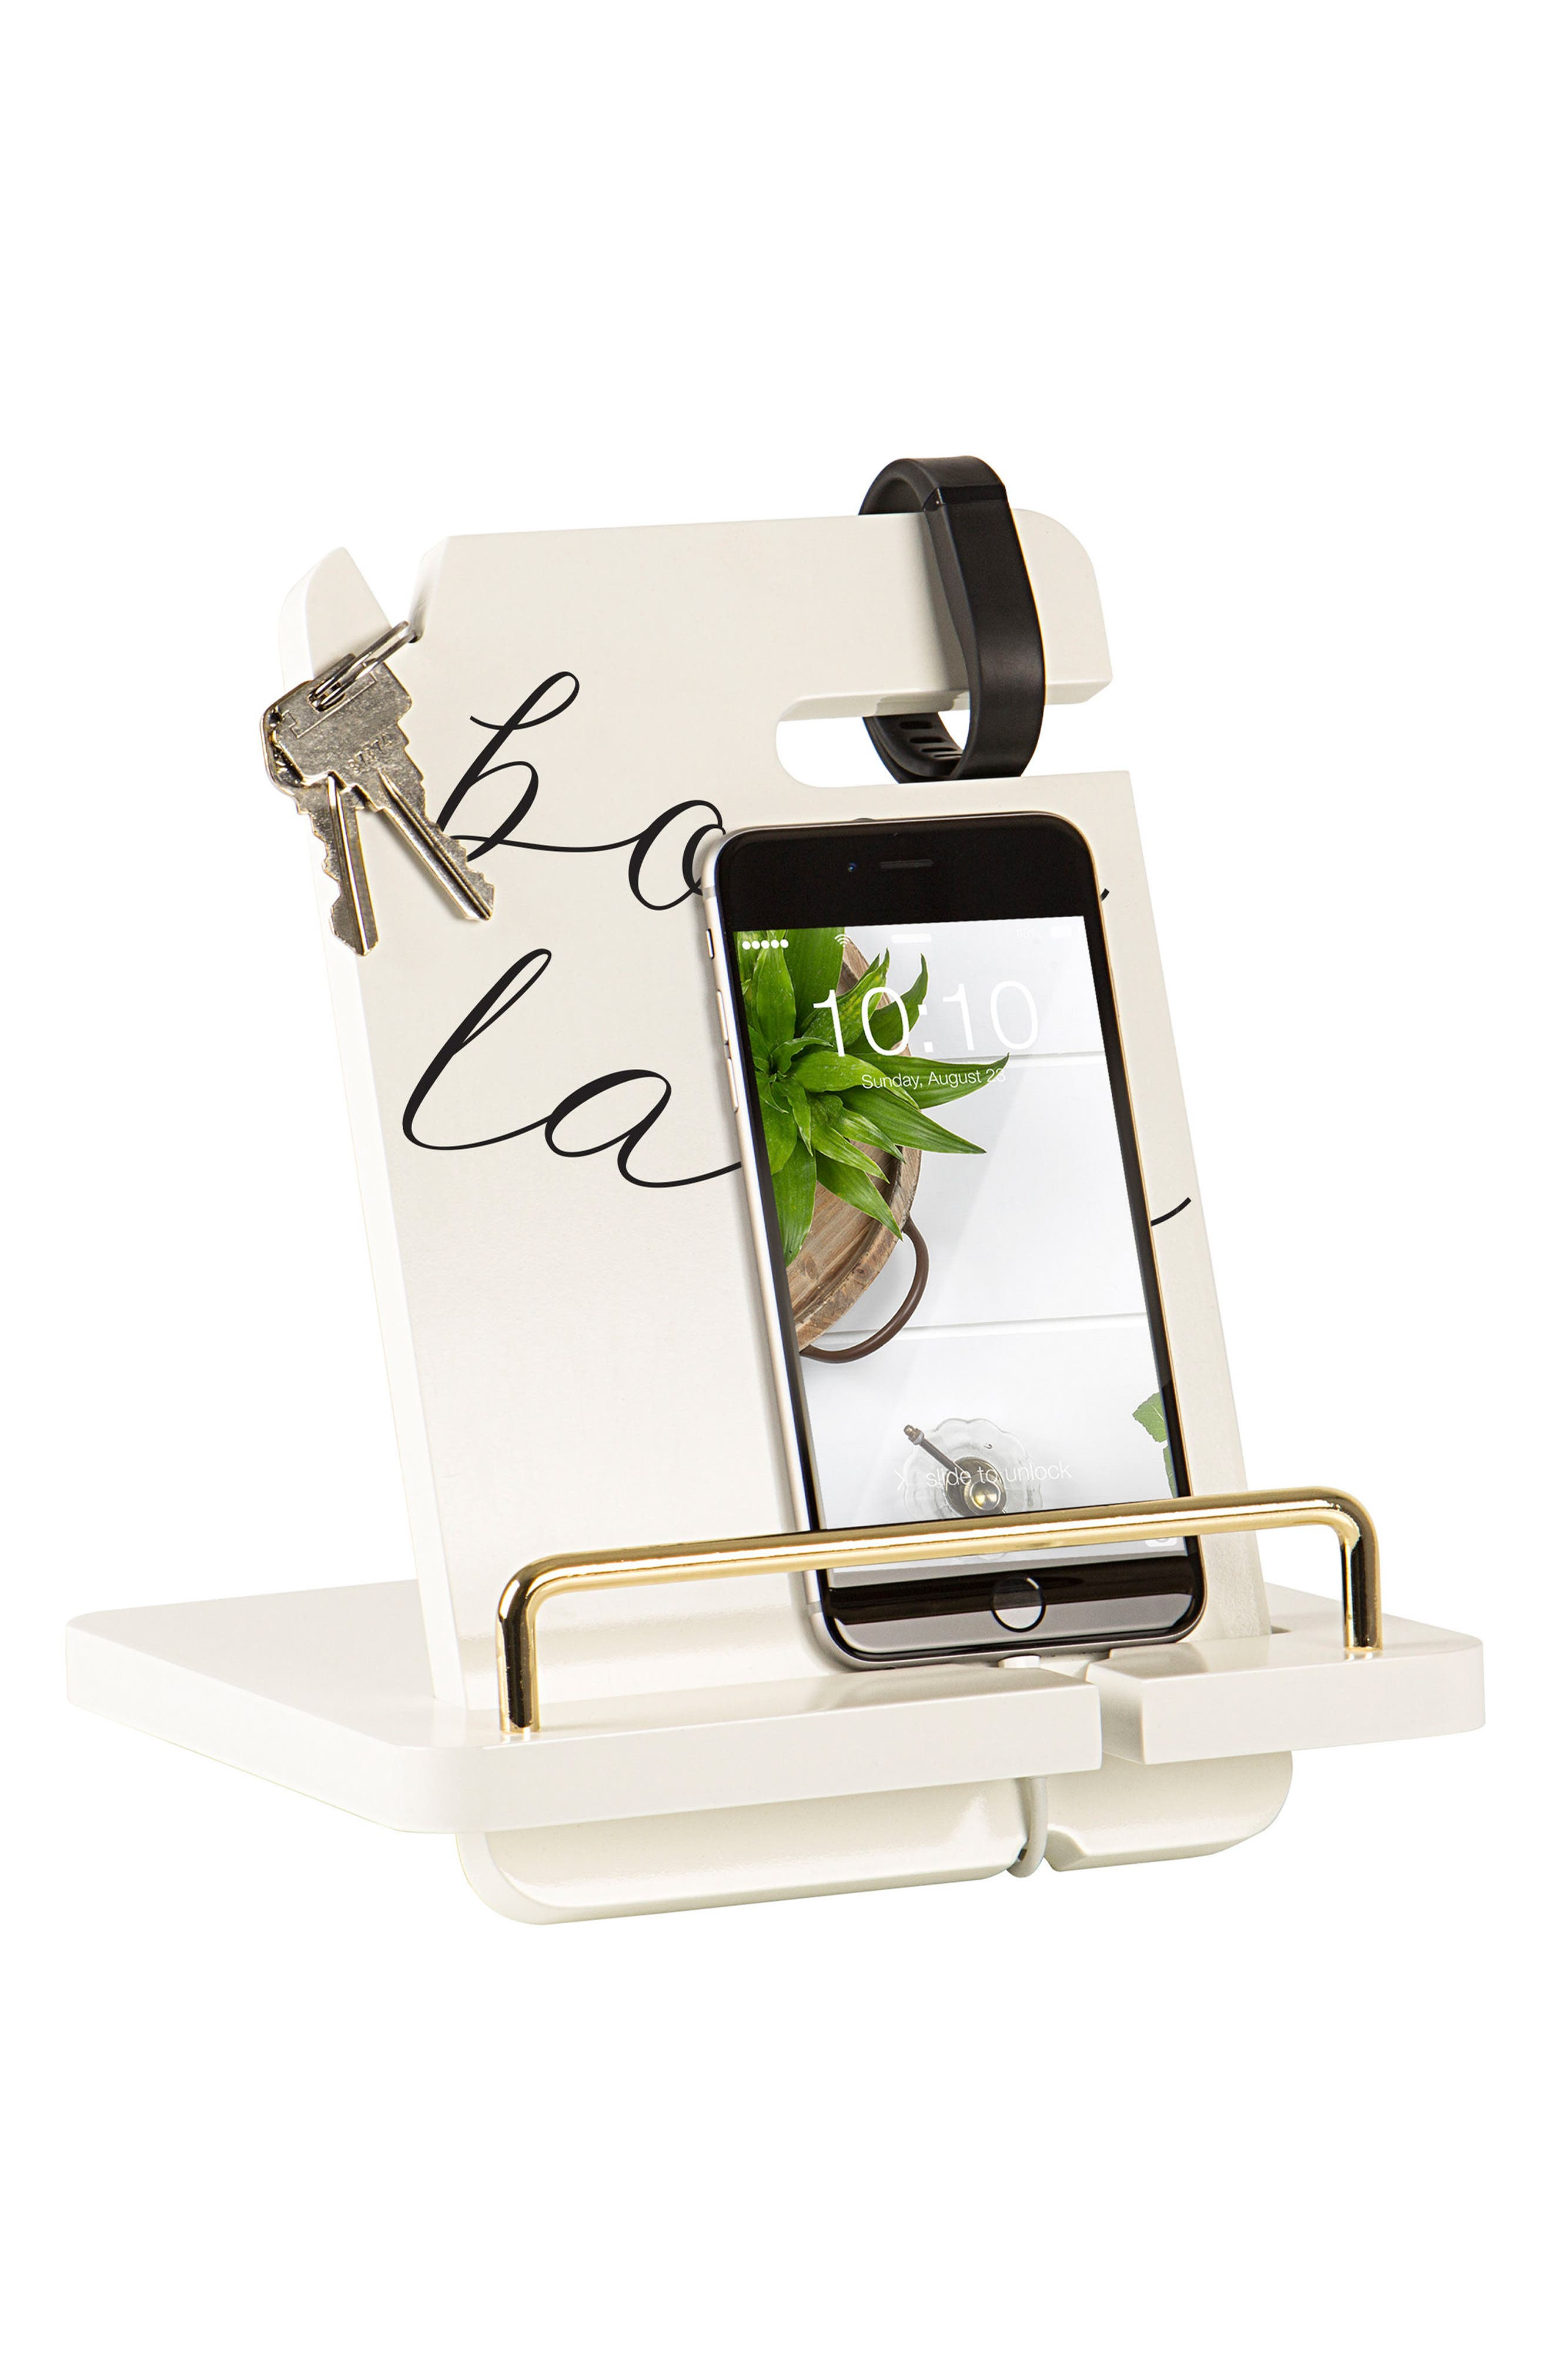 Boss Lady Lacquer Docking Station,                             Alternate thumbnail 5, color,                             White